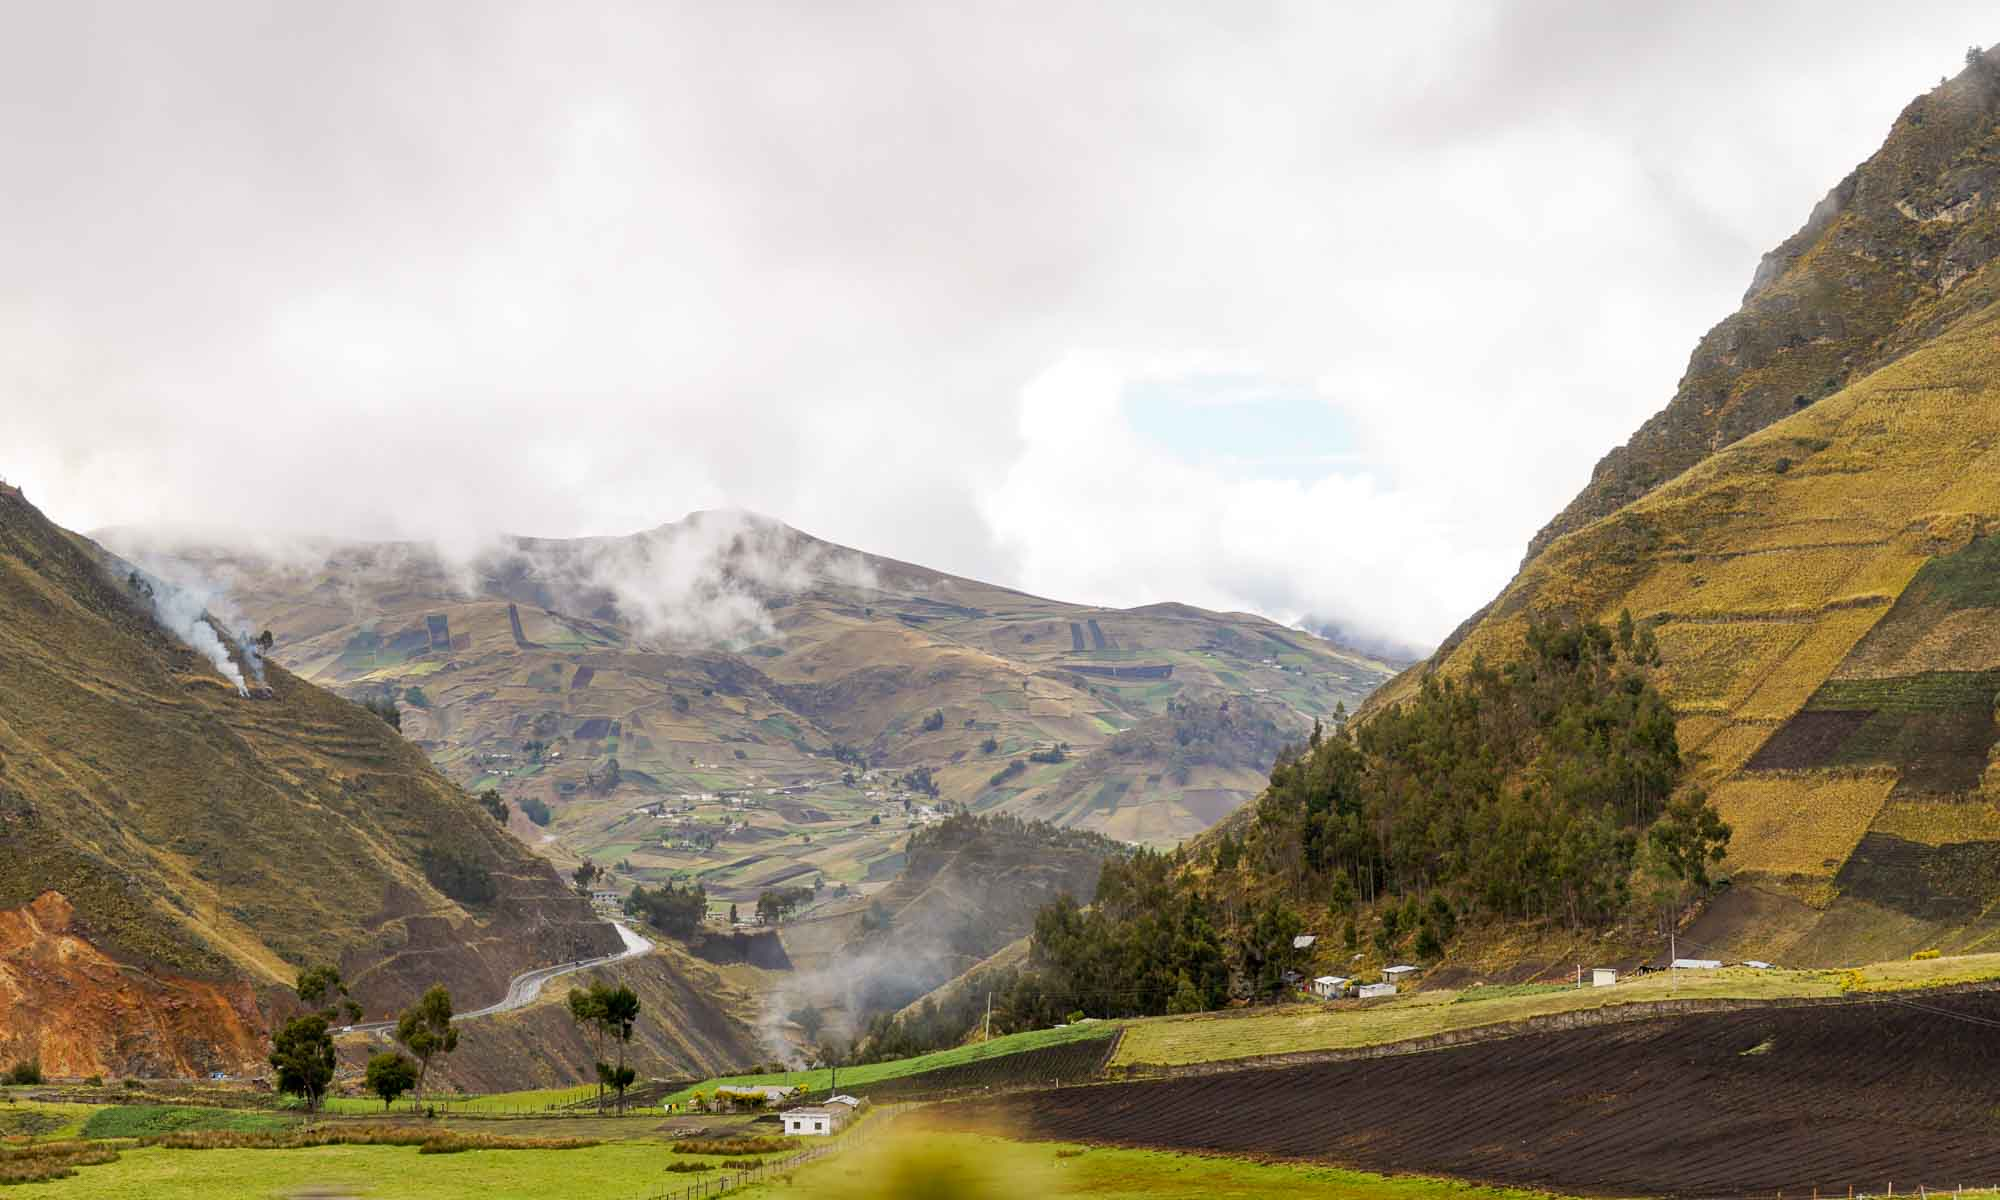 Beautiful views on the road to Laguna Quilotoa